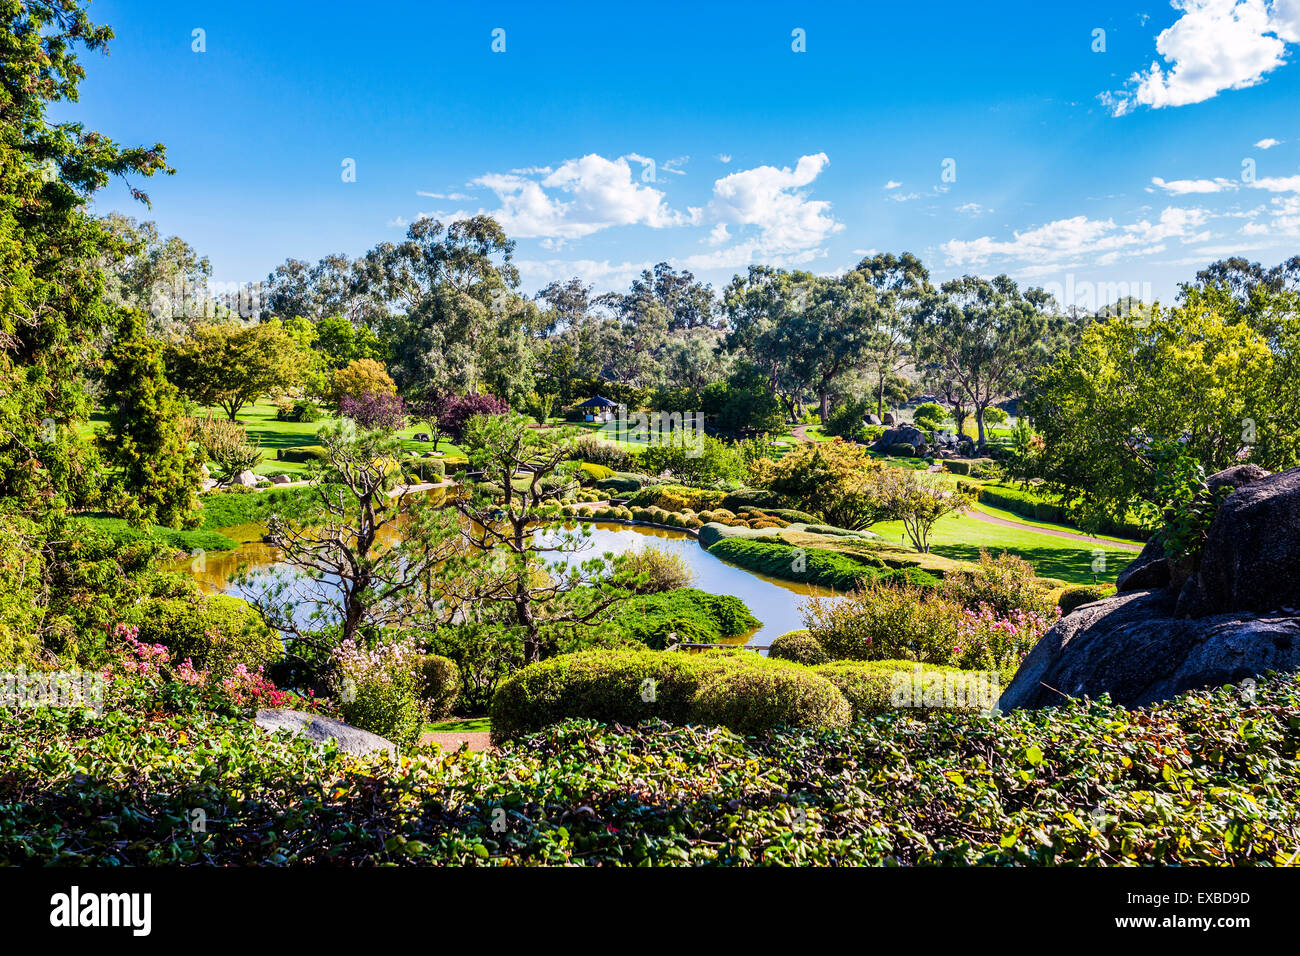 Australien, New South Wales, Zentral-West-Region, Cowra Japanese Garden Stockbild